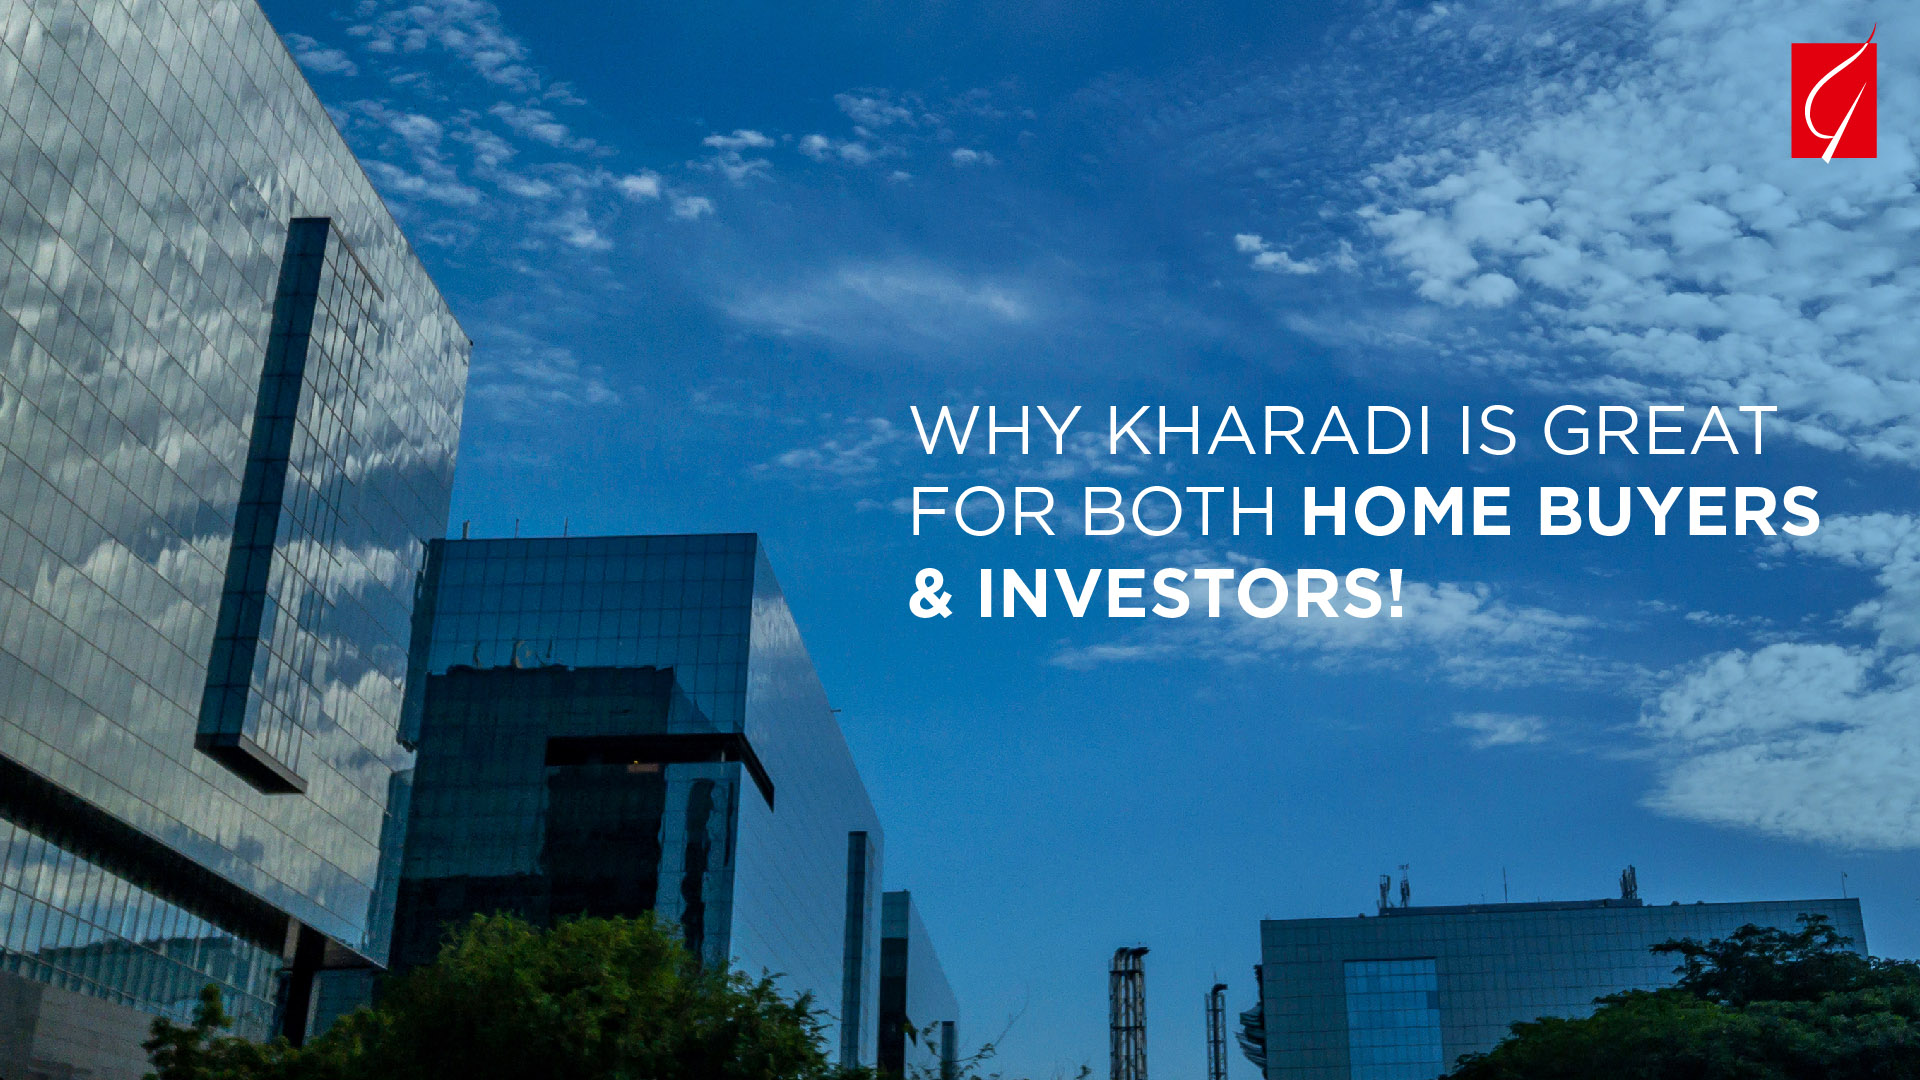 Why Kharadi is great for home buyers & investors?